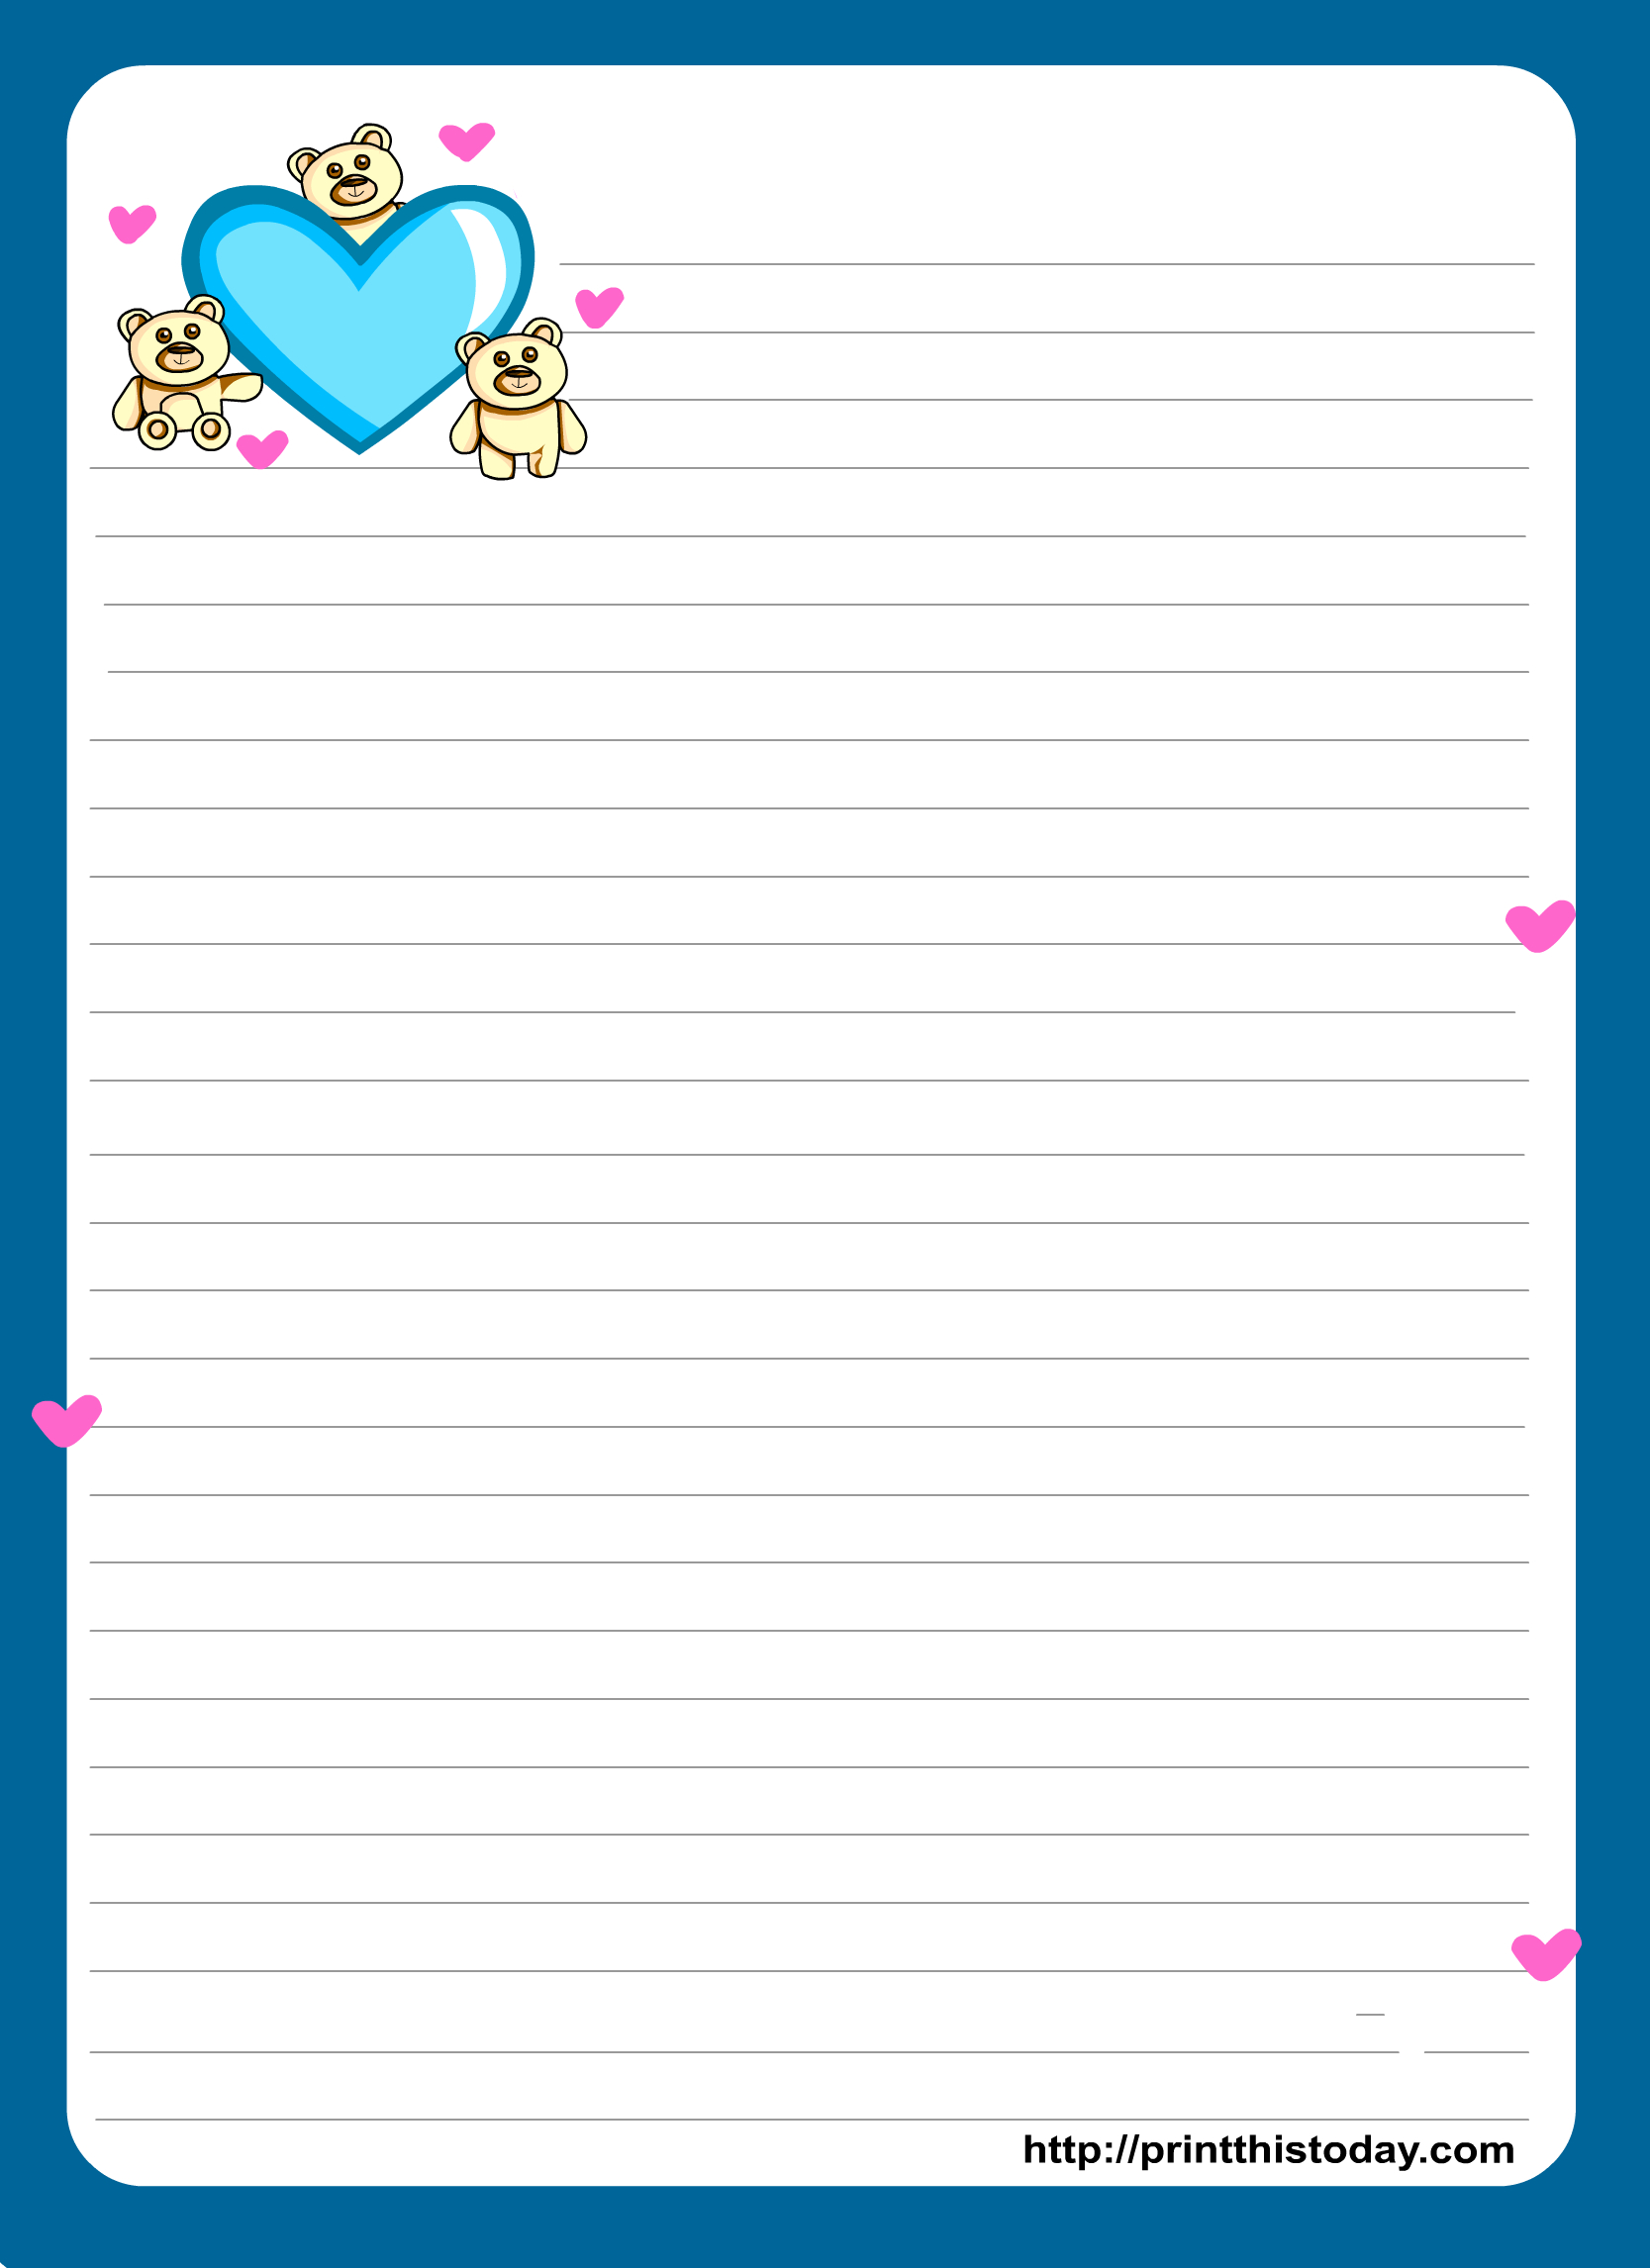 Miss You Love Letter Pad Stationery   Lined Stationery   Free - Free Printable Stationary